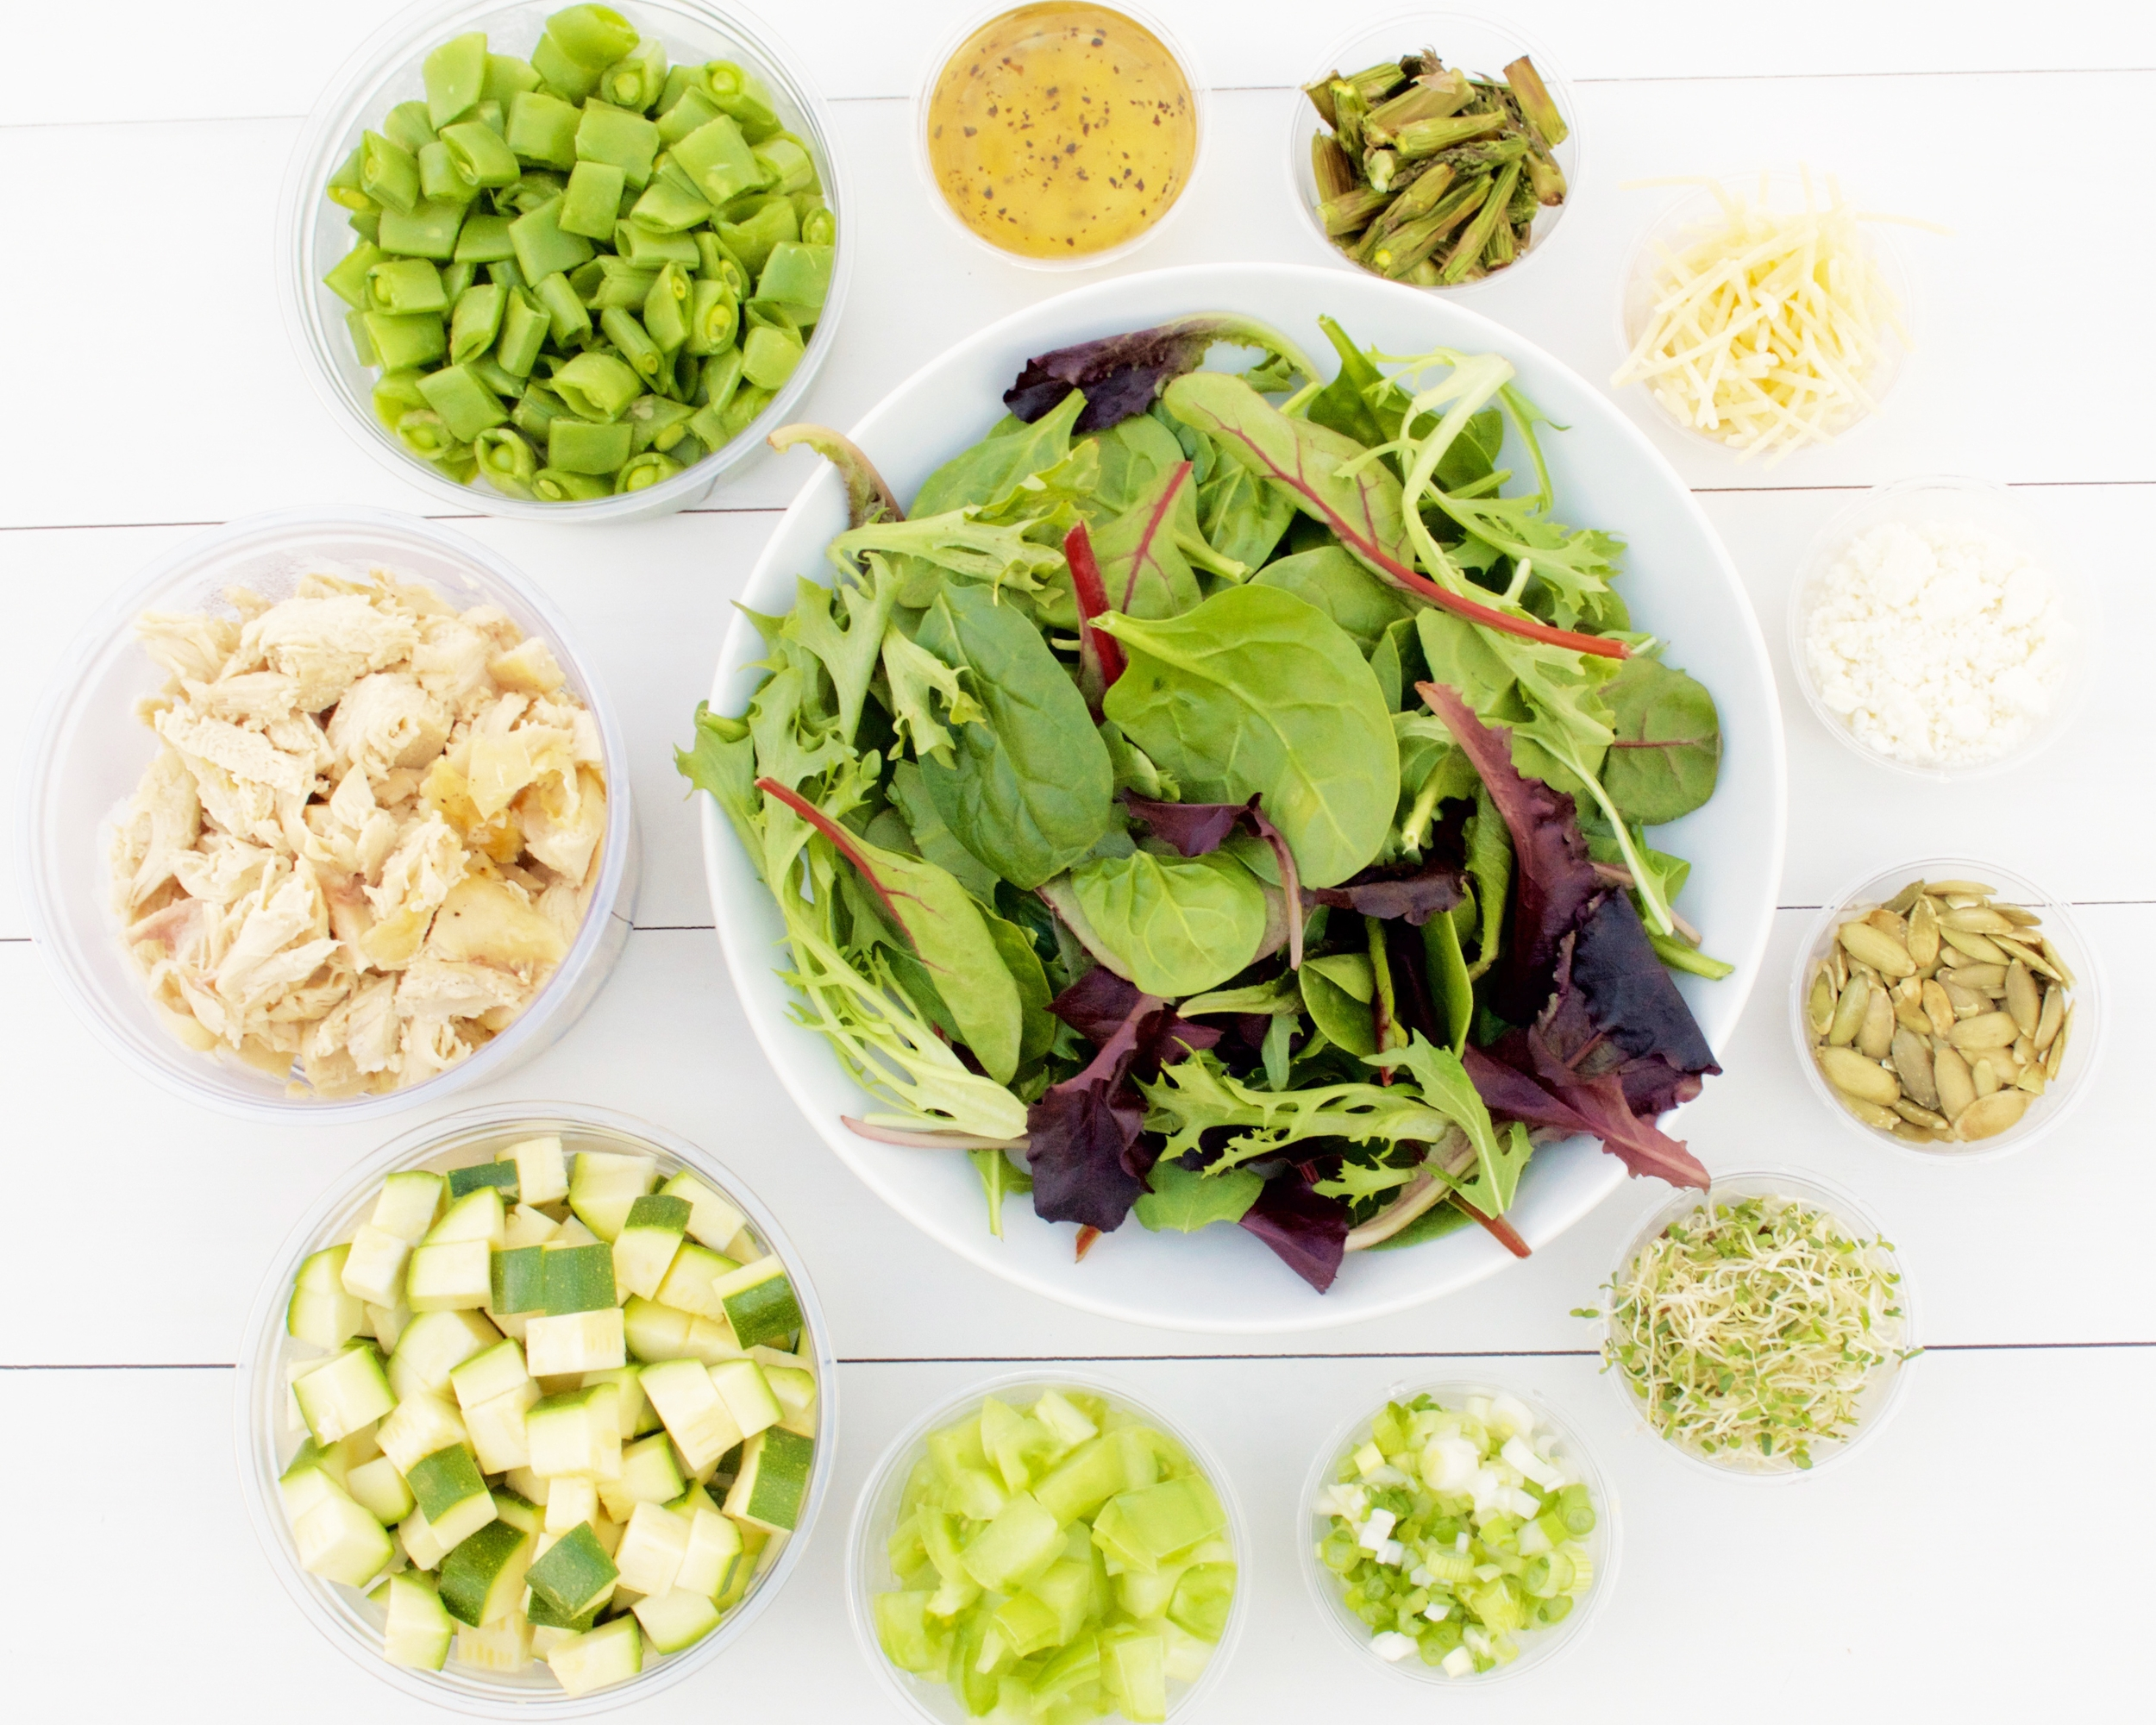 Ingredients_Garden Salad_Square.jpg